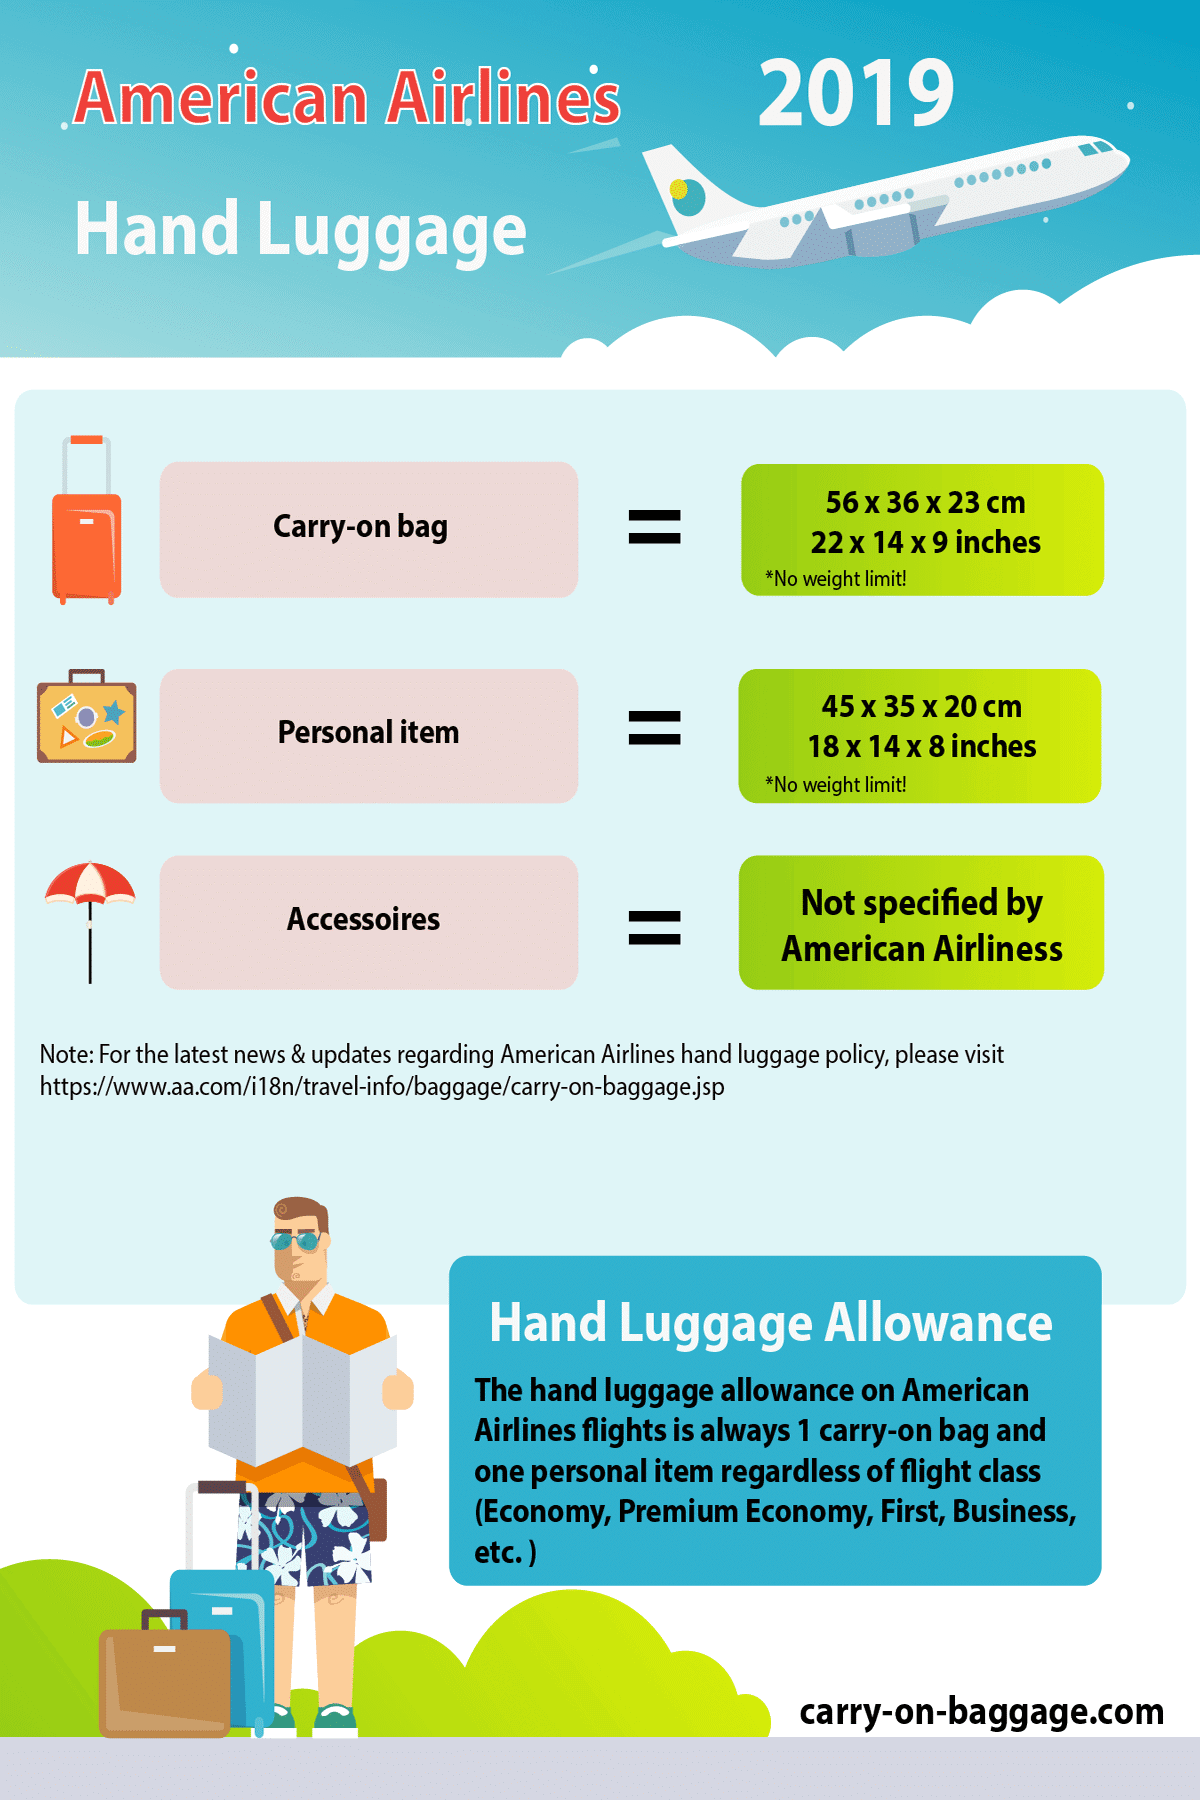 American Airlines Hand Luggage Policy